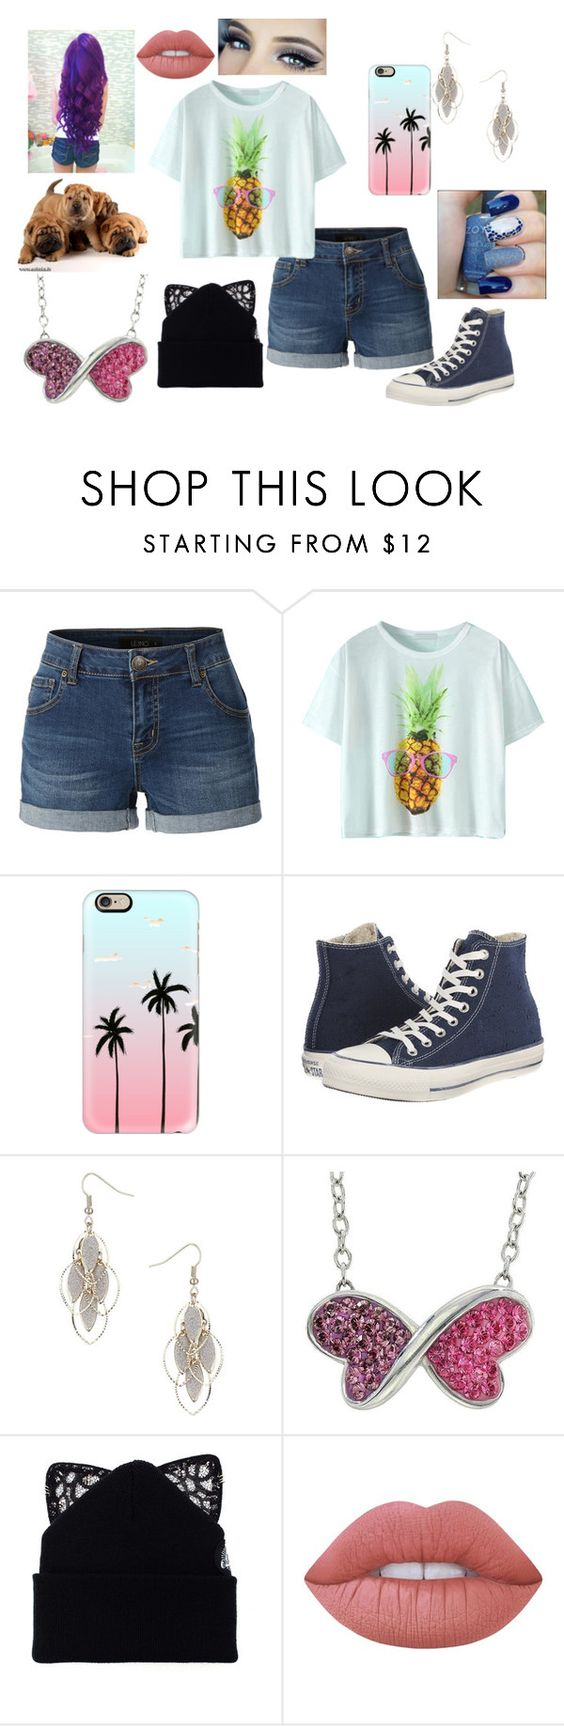 """A Outfit"" by jordanbond55 ❤ liked on Polyvore featuring LE3NO, Casetify, Converse, Wallis, Target, Silver Spoon Attire and Lime Crime"